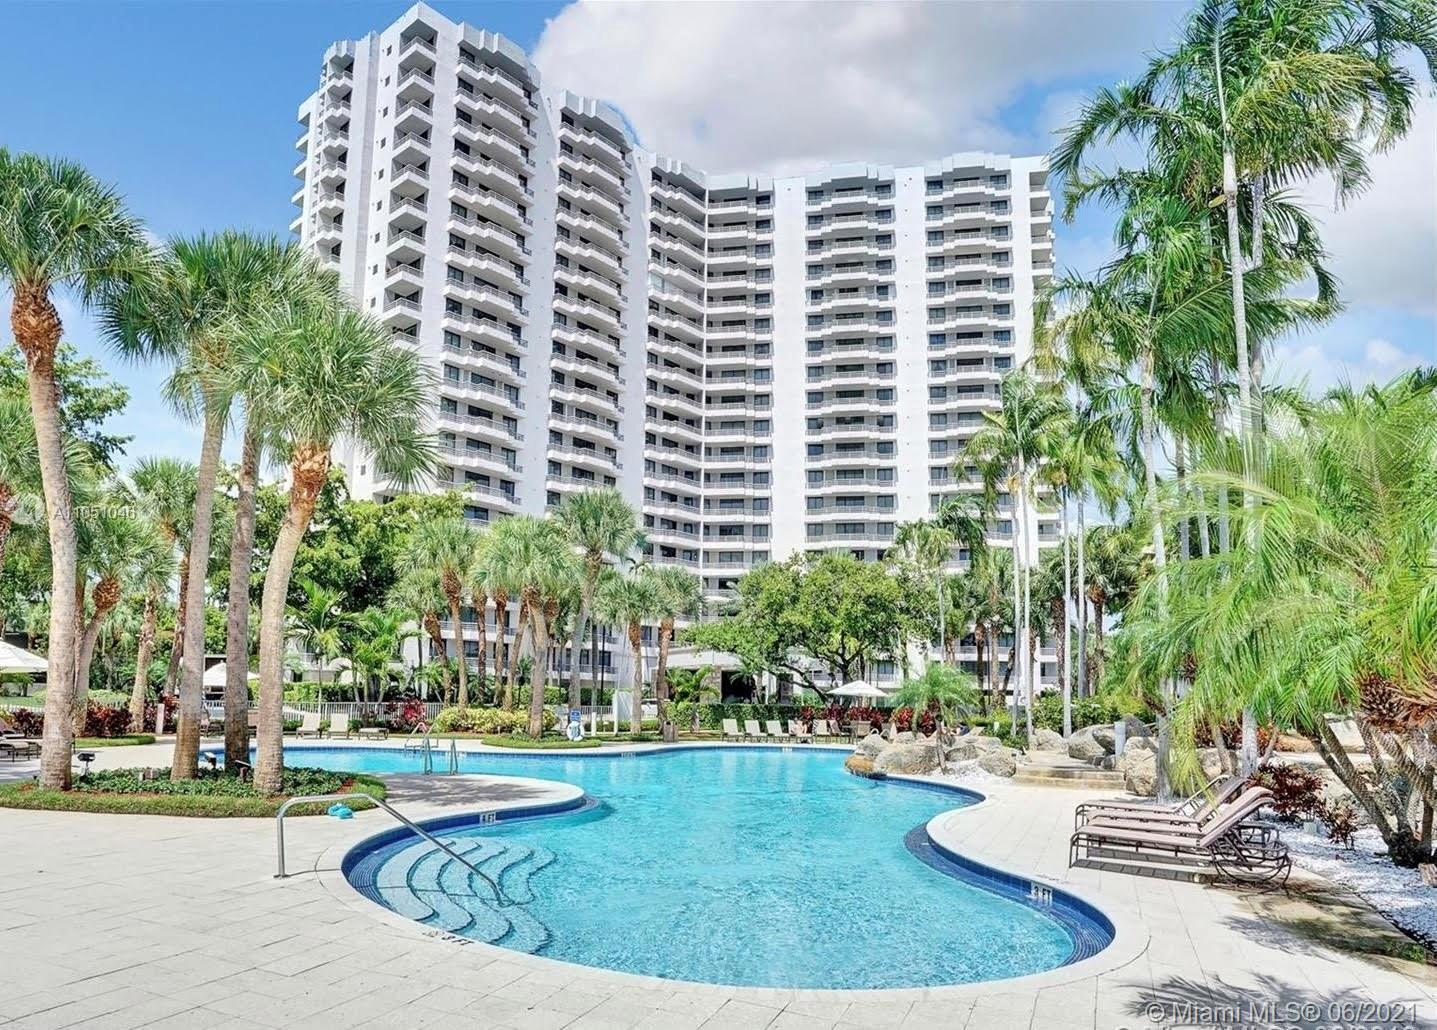 Corner Unit with split bedroom floor plan and golf course view. Enjoy the Miami sunrises from every